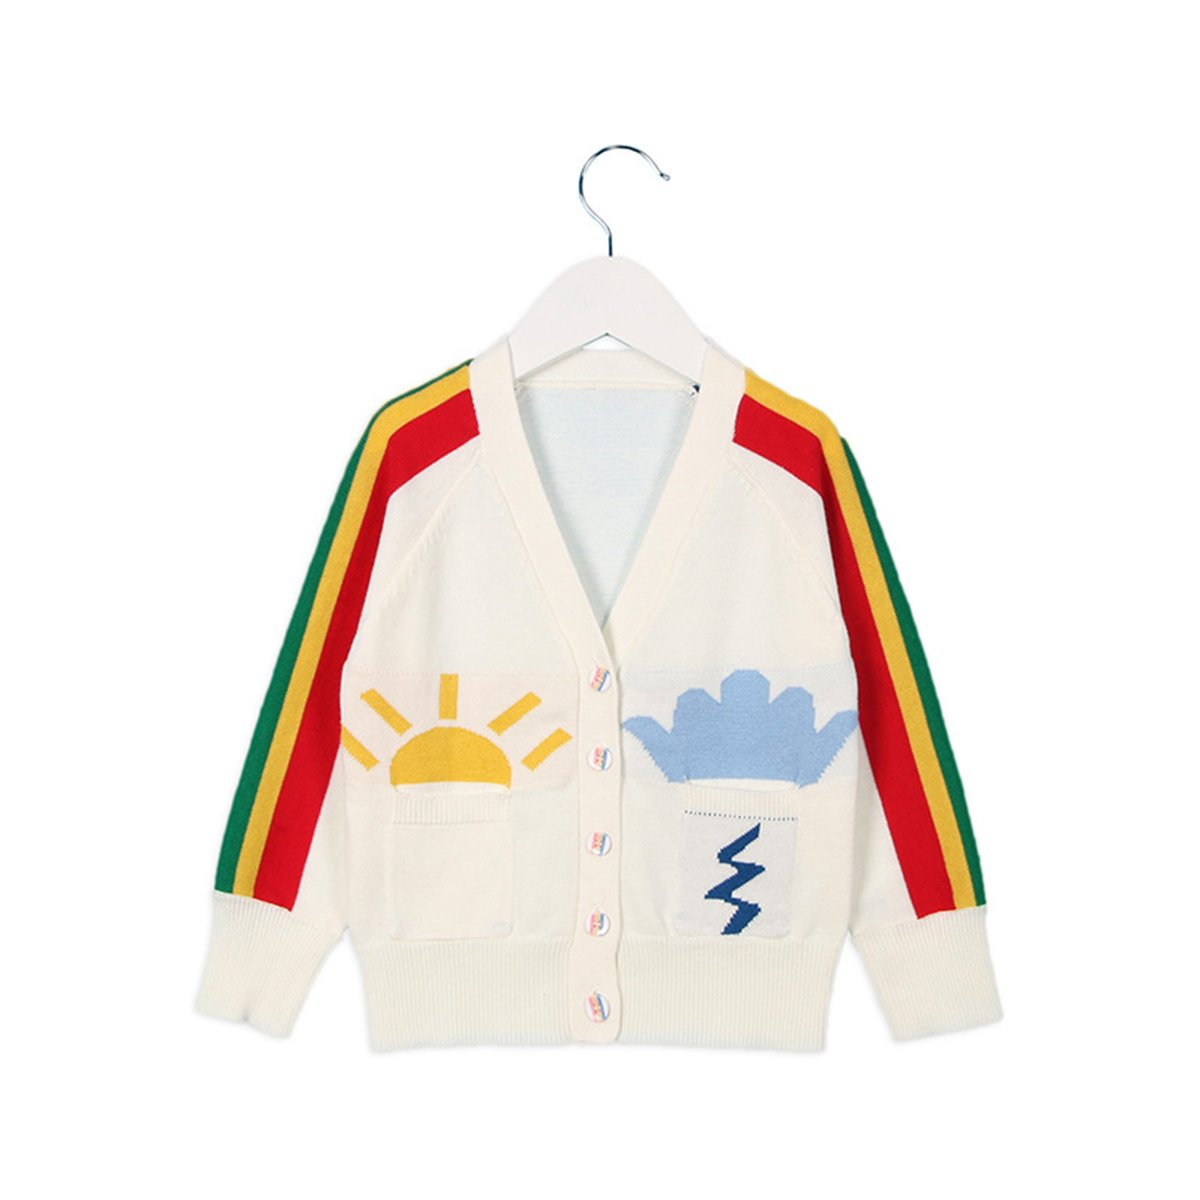 Lemonkid Newly Spring Fall Cotton Rainbow Knit Cardigan Rush Guard Smock Sweater 110cm/fit 3-4 T